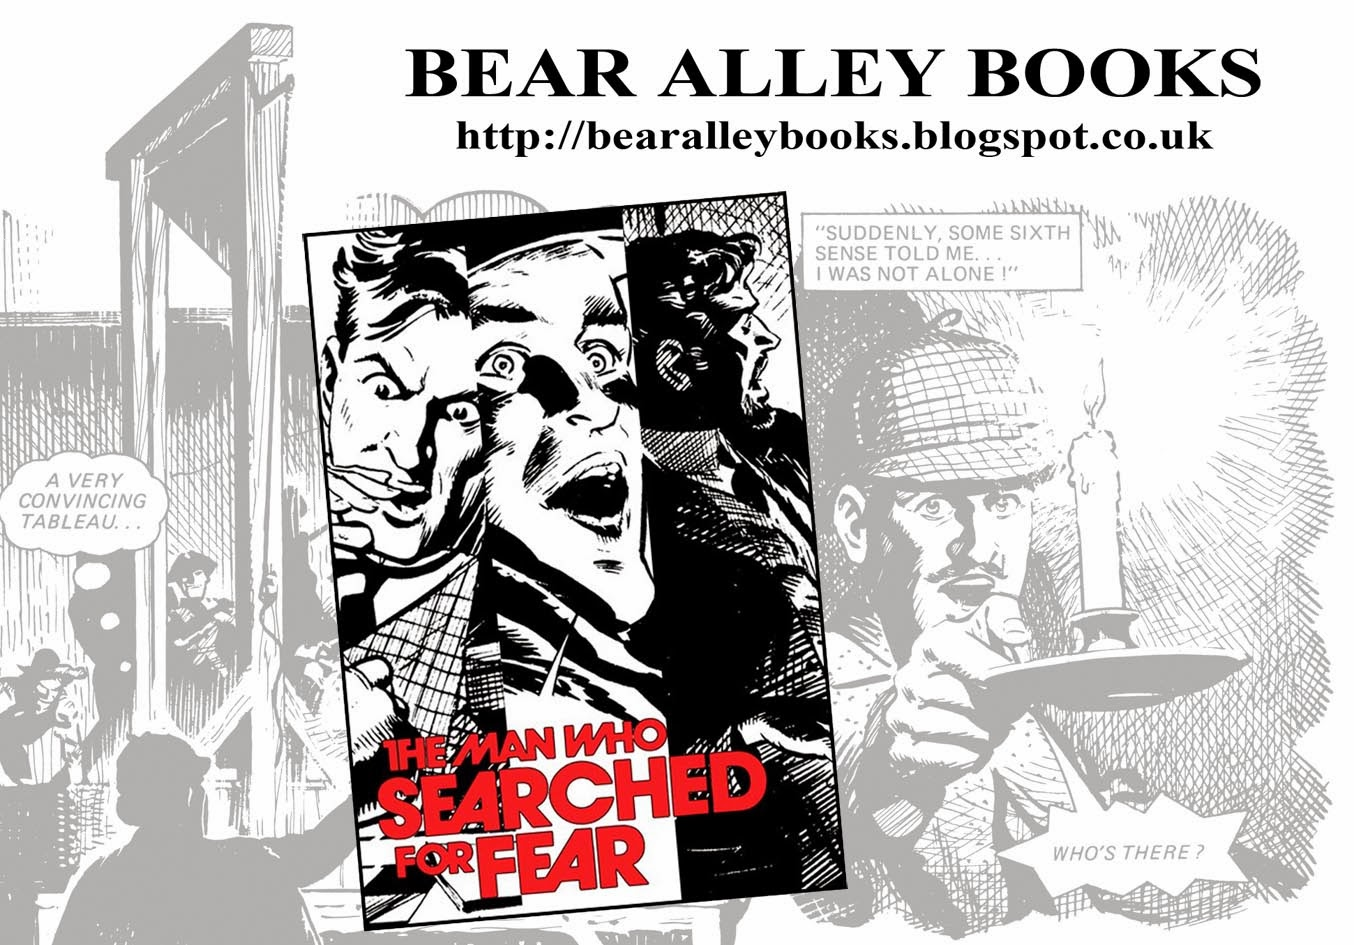 http://bearalleybooks.blogspot.co.uk/